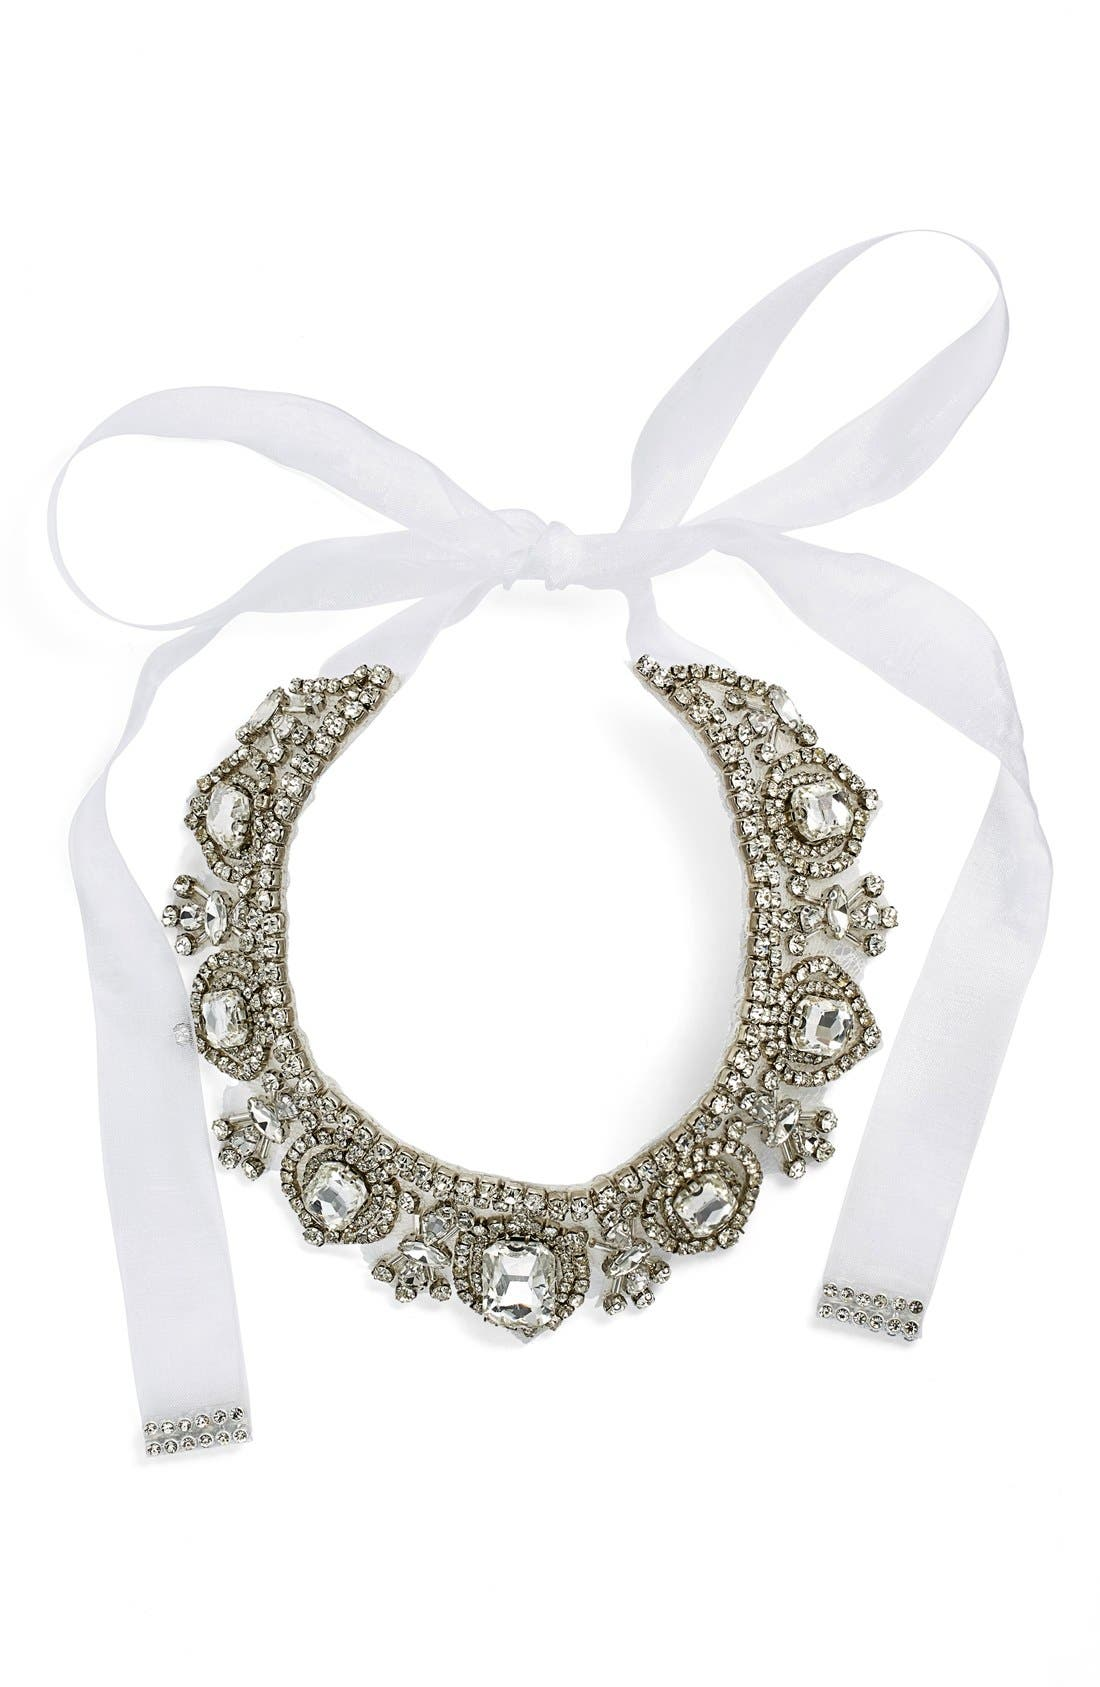 'Glamorous' Tie Collar Necklace,                         Main,                         color, Ivory